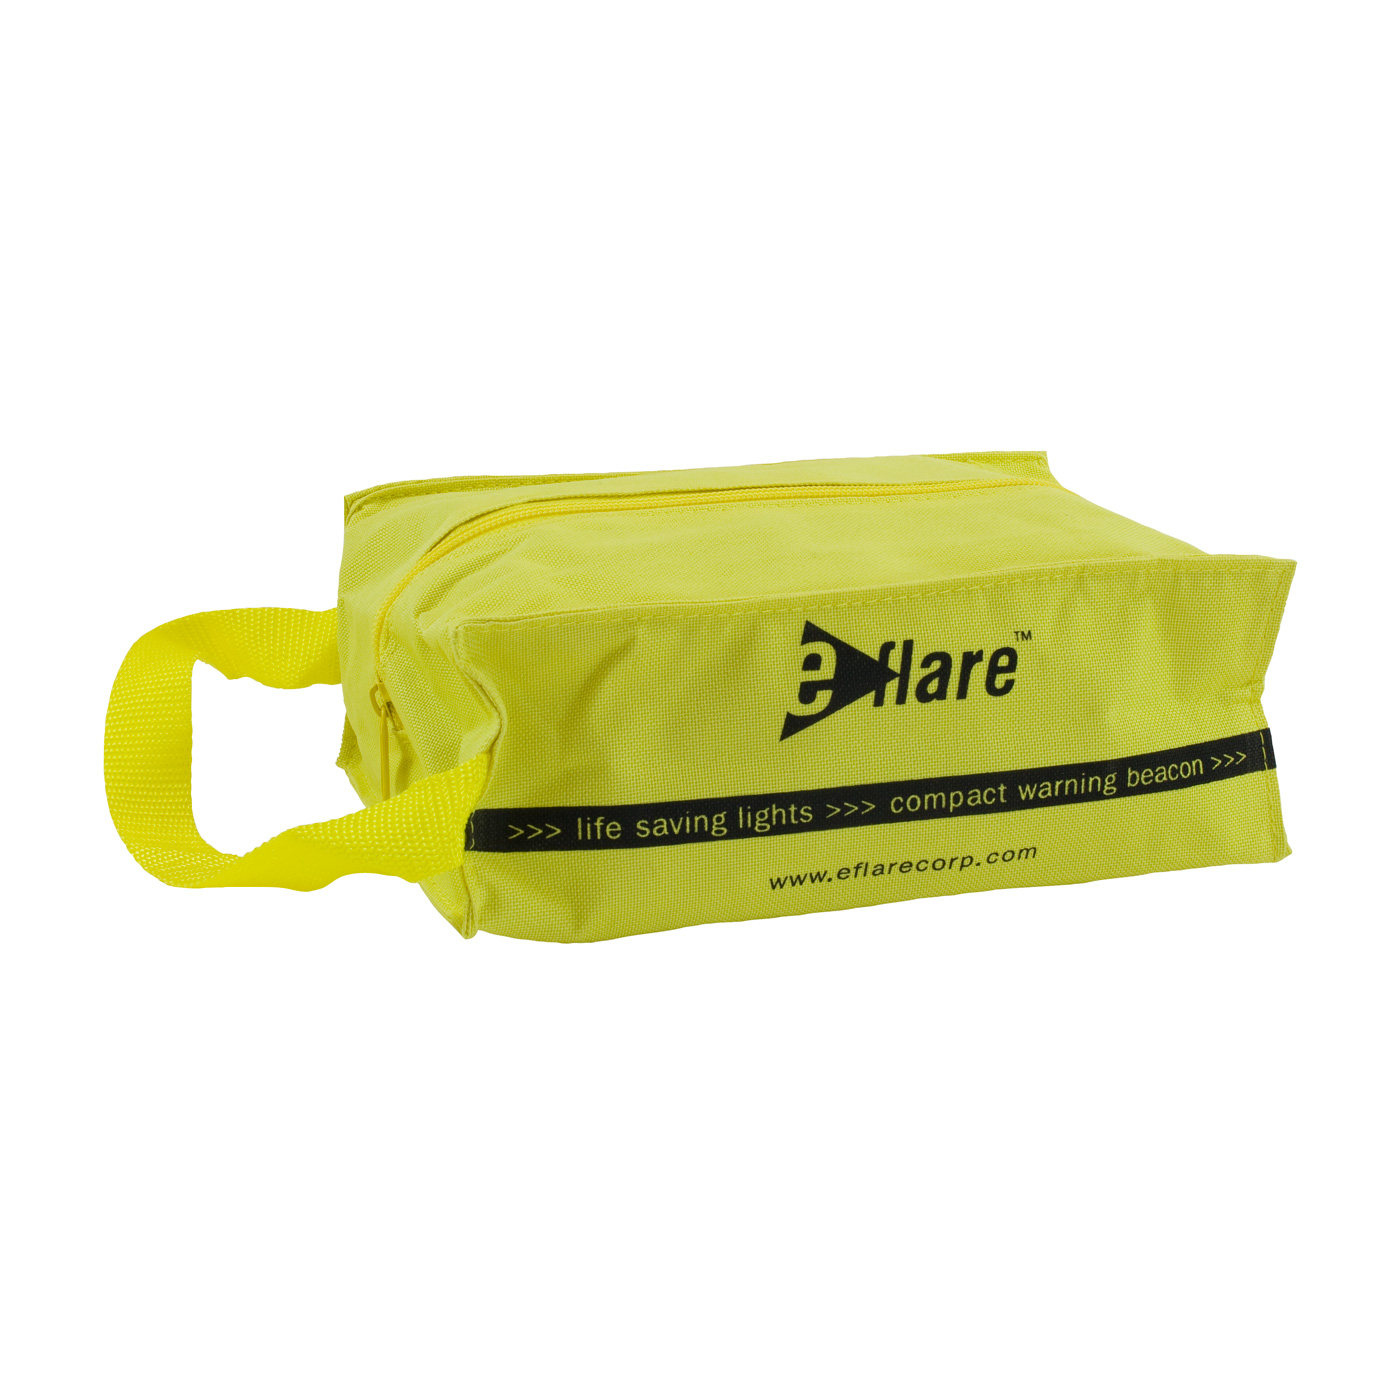 Storage Bag, Small, Yellow w/ Logo, Carr